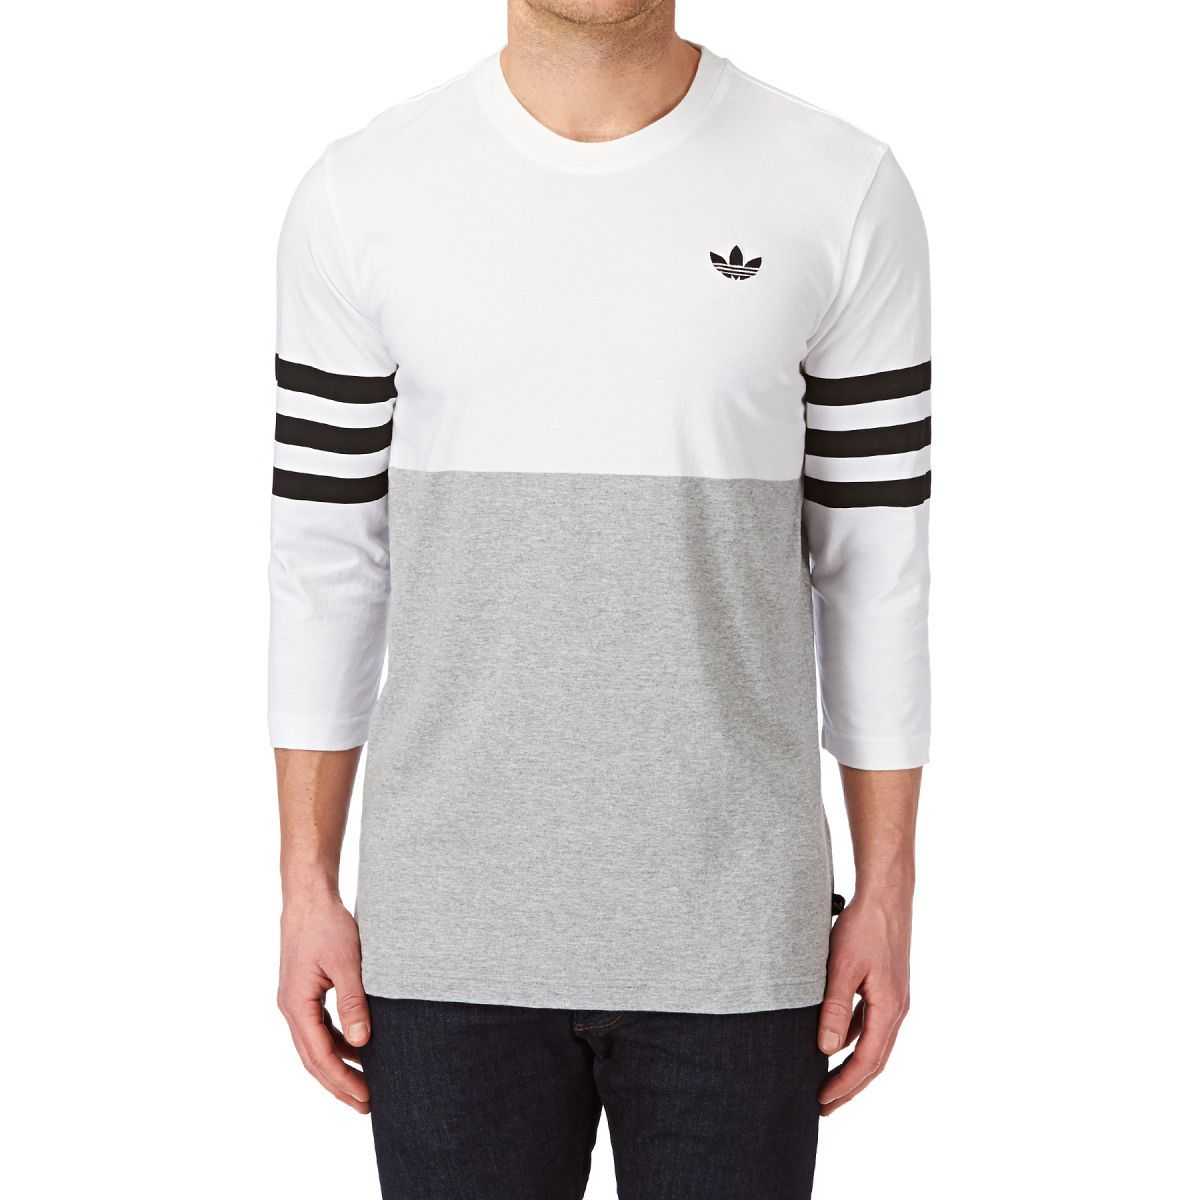 Adidas originals stripesback long sleeve t shirt white Mens long sleeve white t shirt